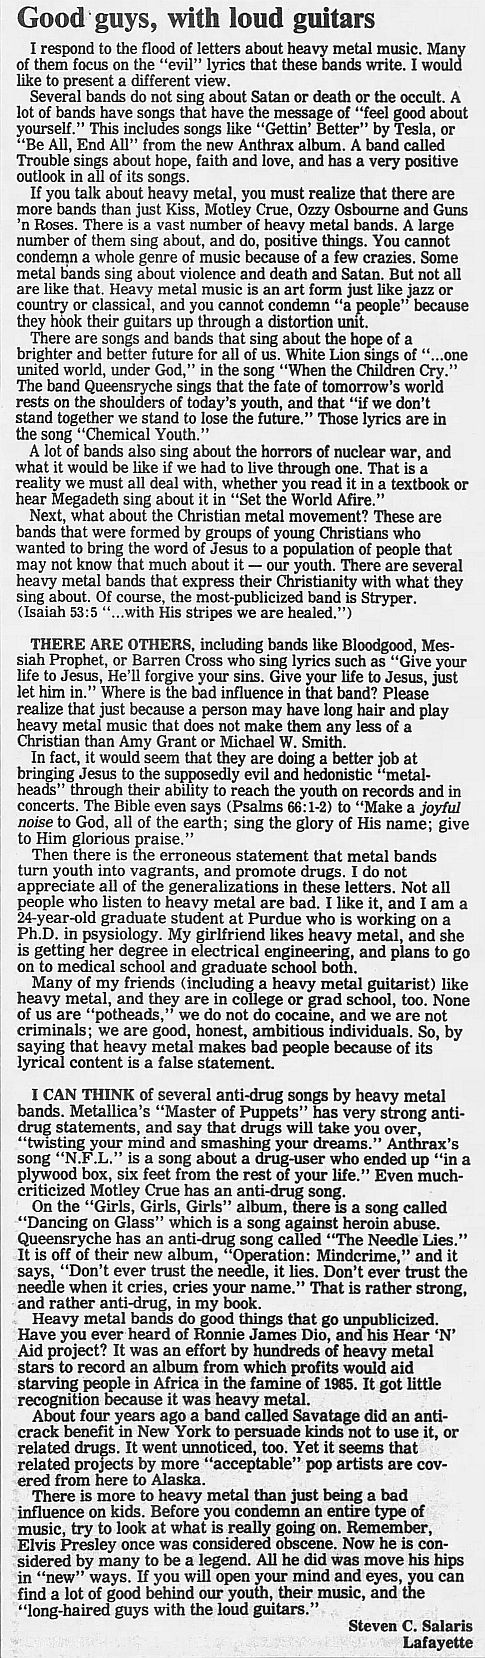 1989.02.21/04.10 - Journal and Courier (Lafayette, IN.) - Readers' letters/Debate on GN'R 9kK8NWkR_o